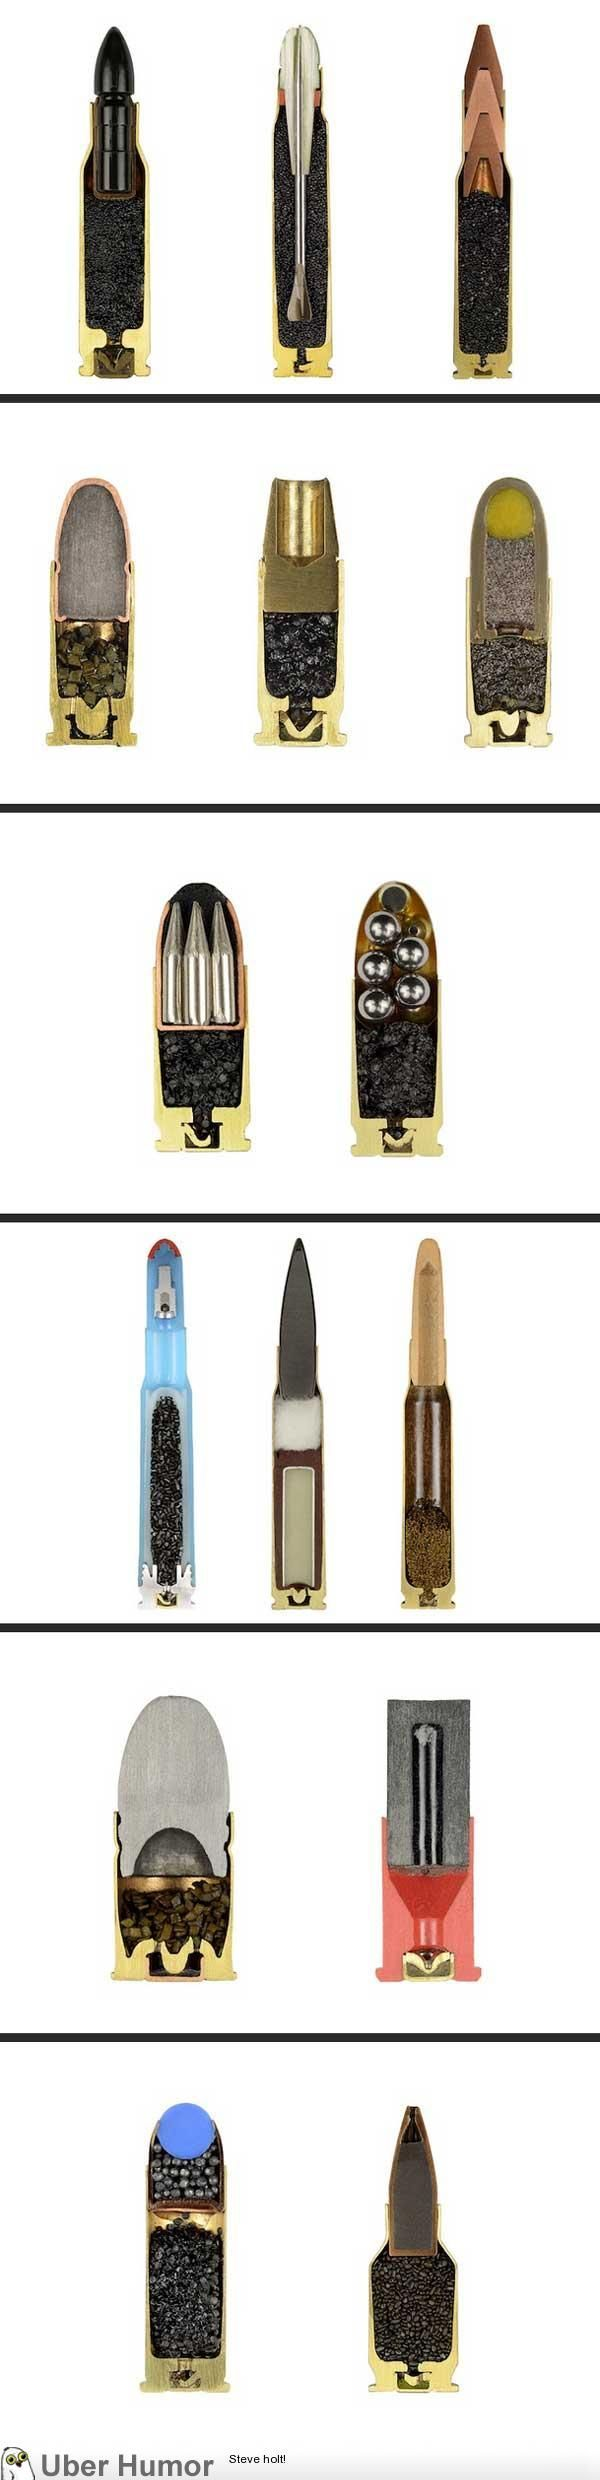 tomorrows adventures A visual look into different types of ammo » tomorrows adventures